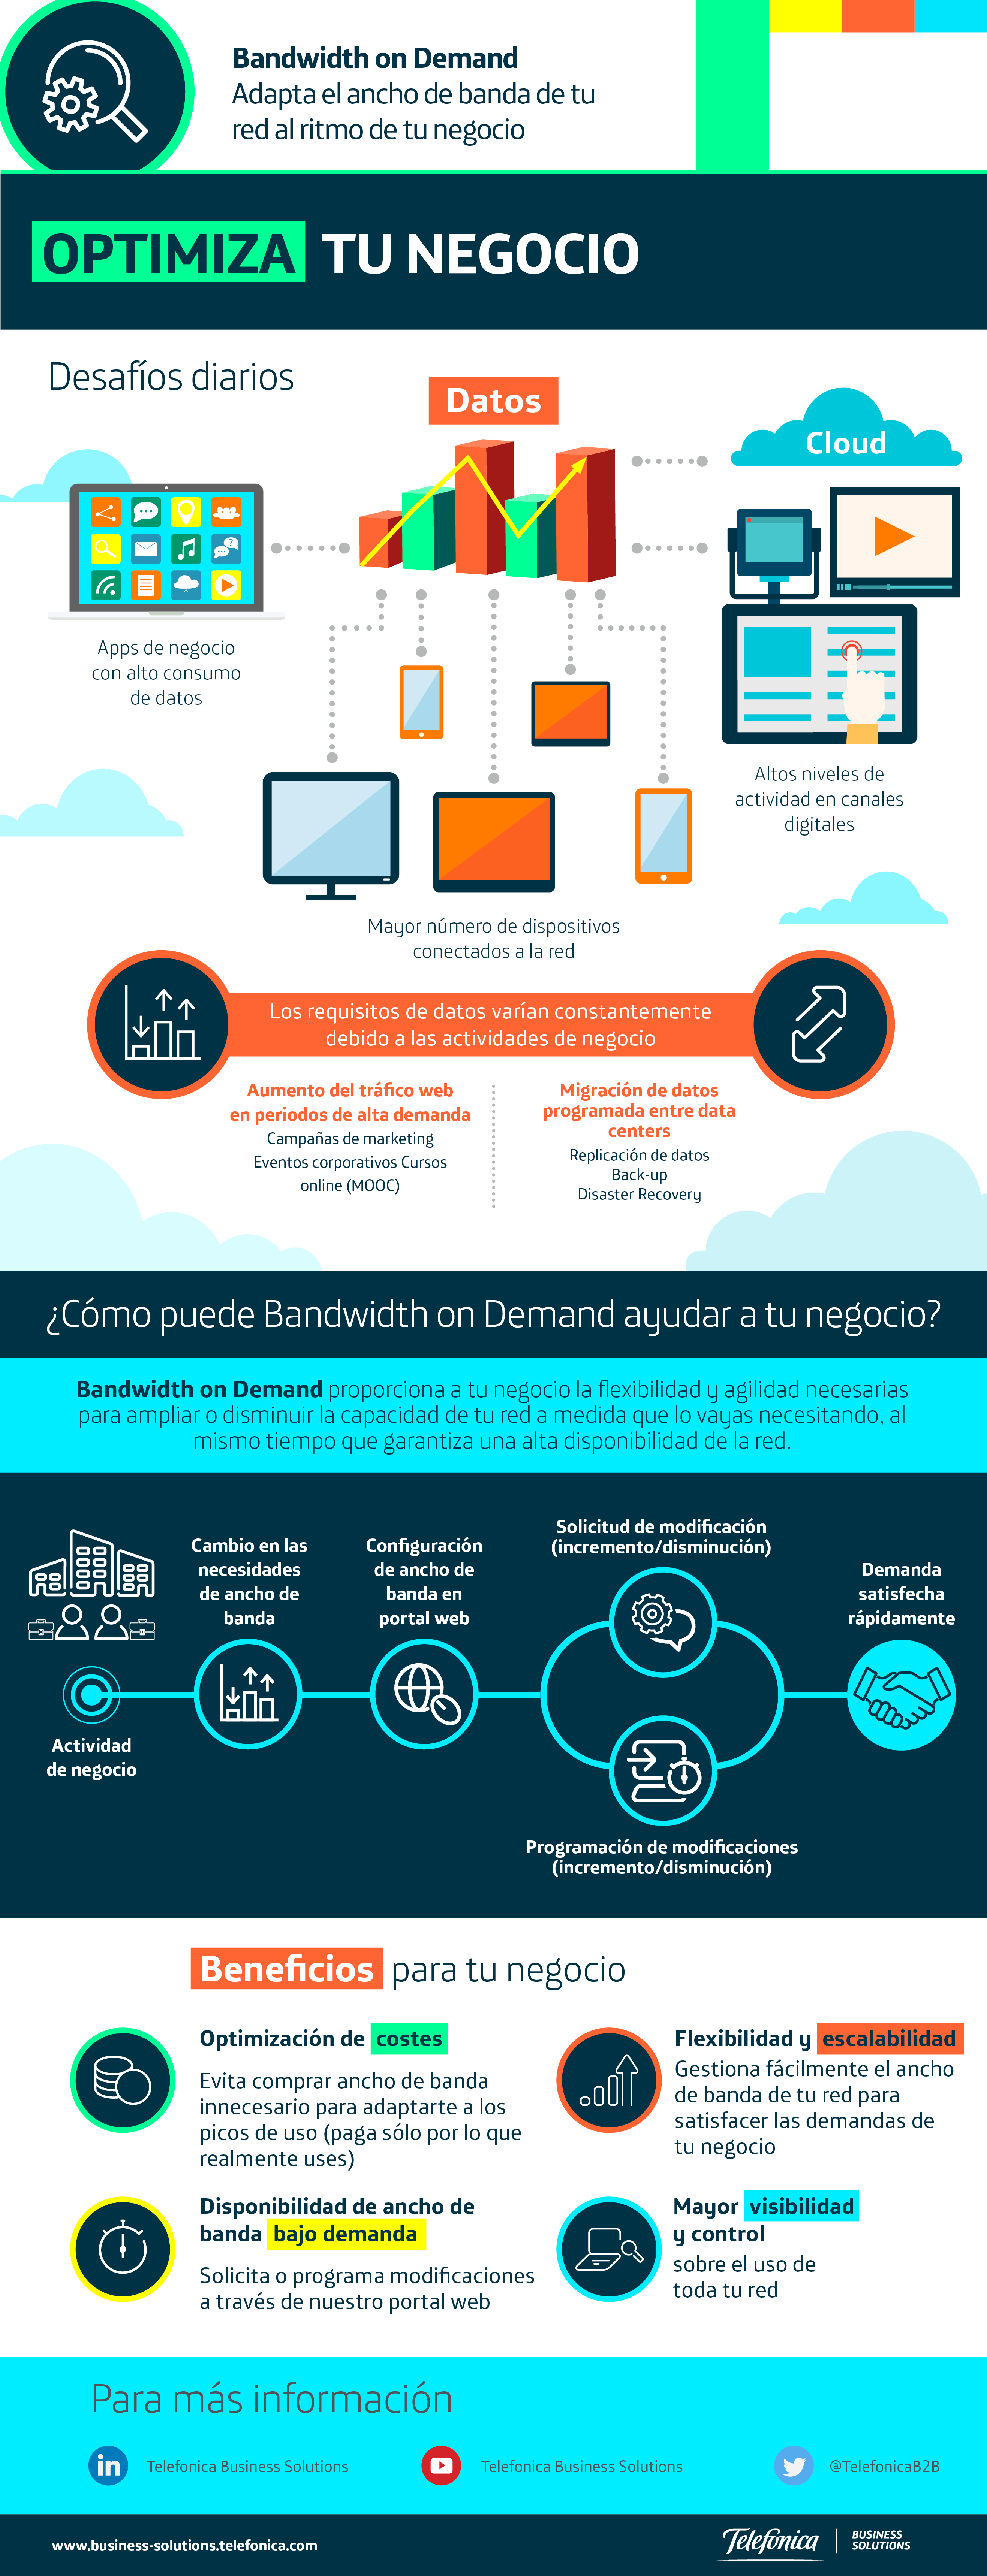 Bandwidth on Demand: Adapta el ancho de banda de tu red al ritmo de tu negocio